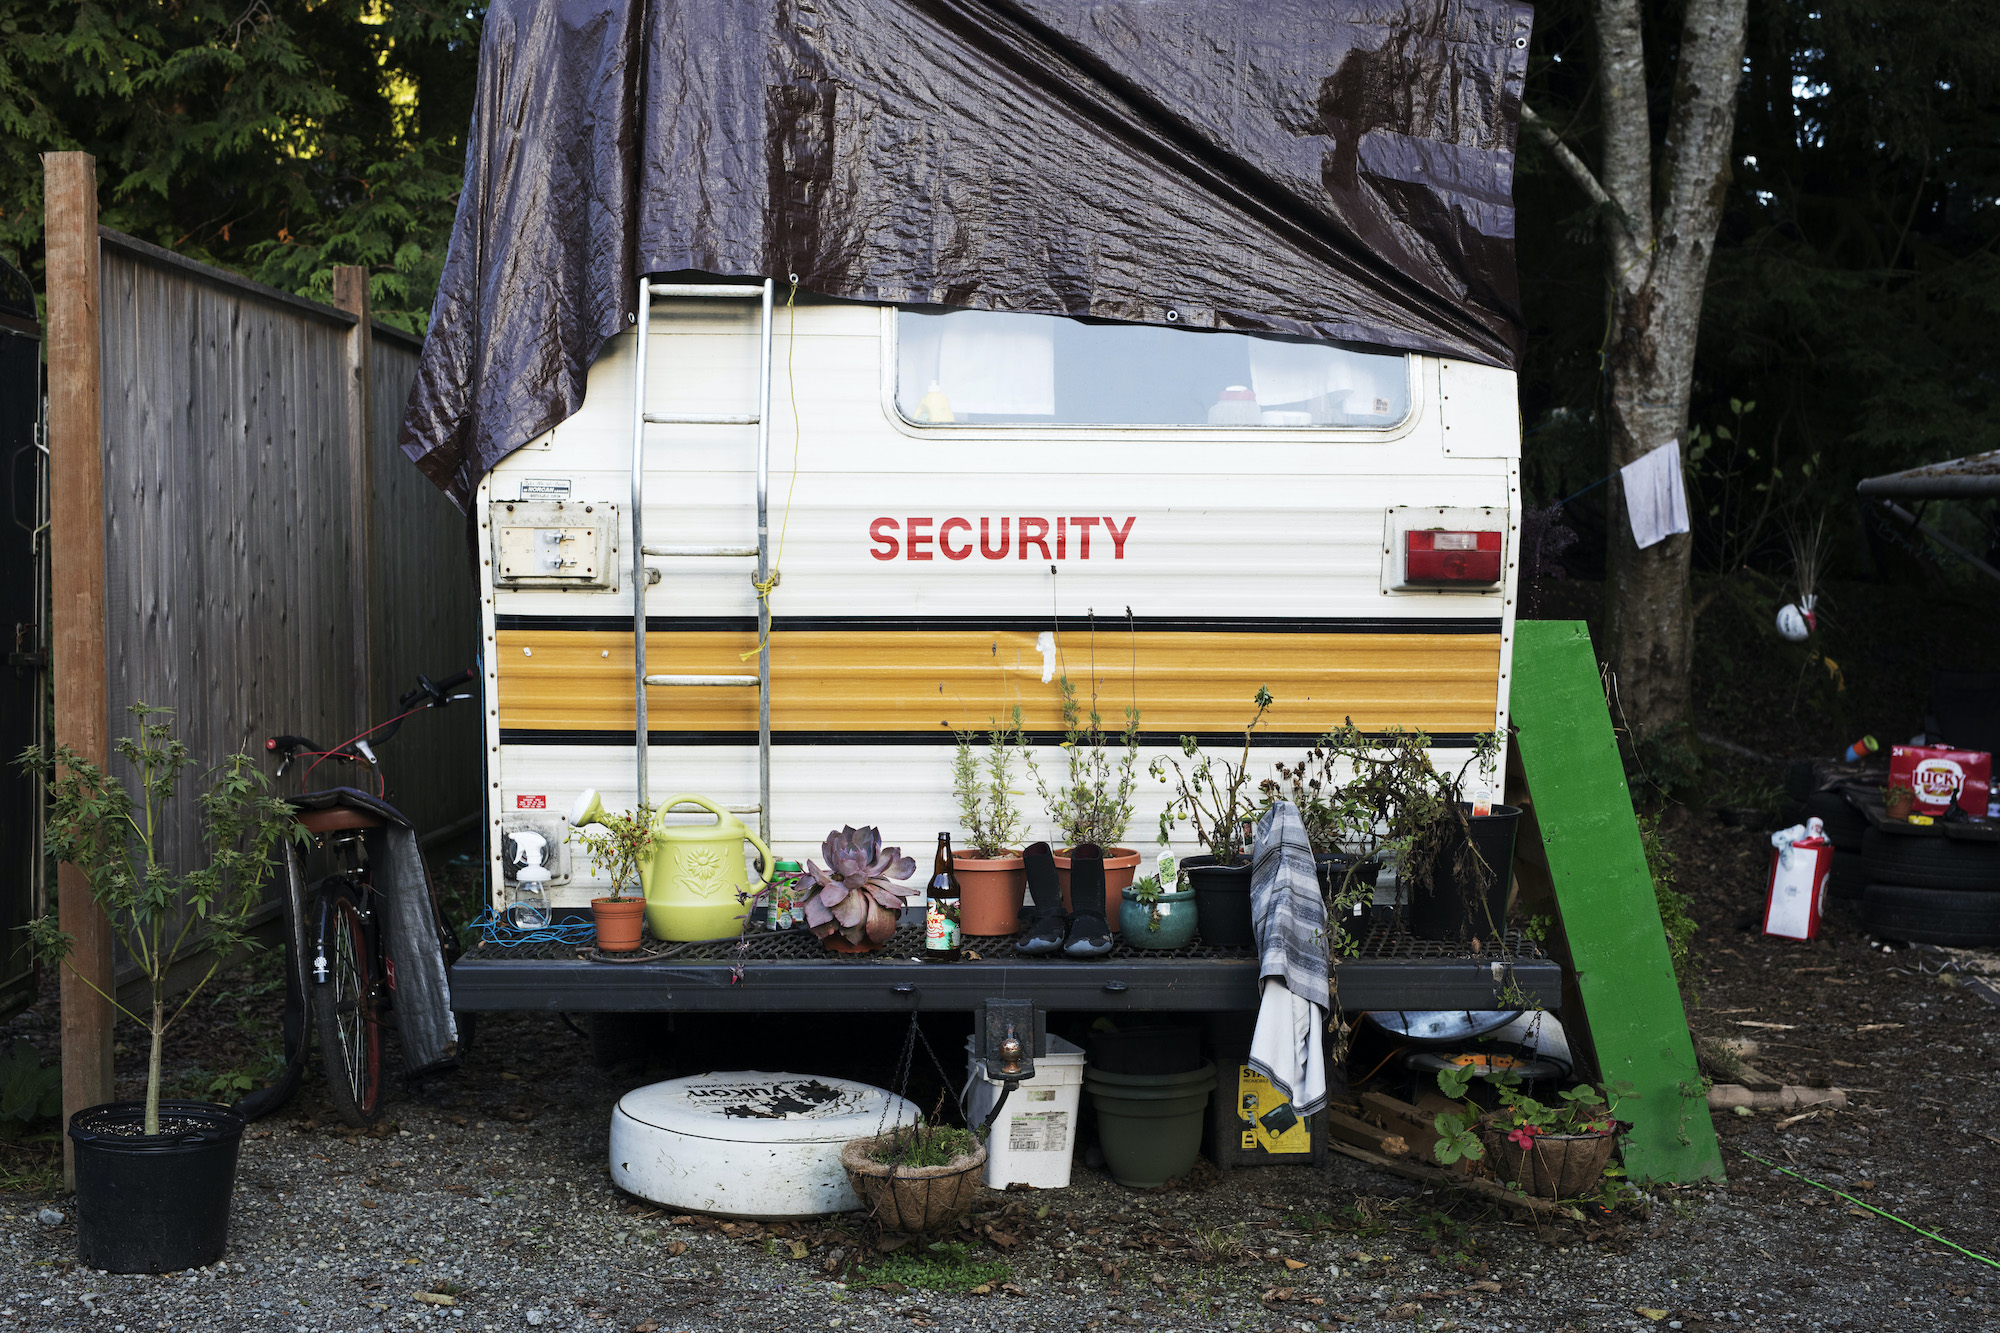 Many Tofino residents have made a home within Crab Apple Campground due to lack of housing